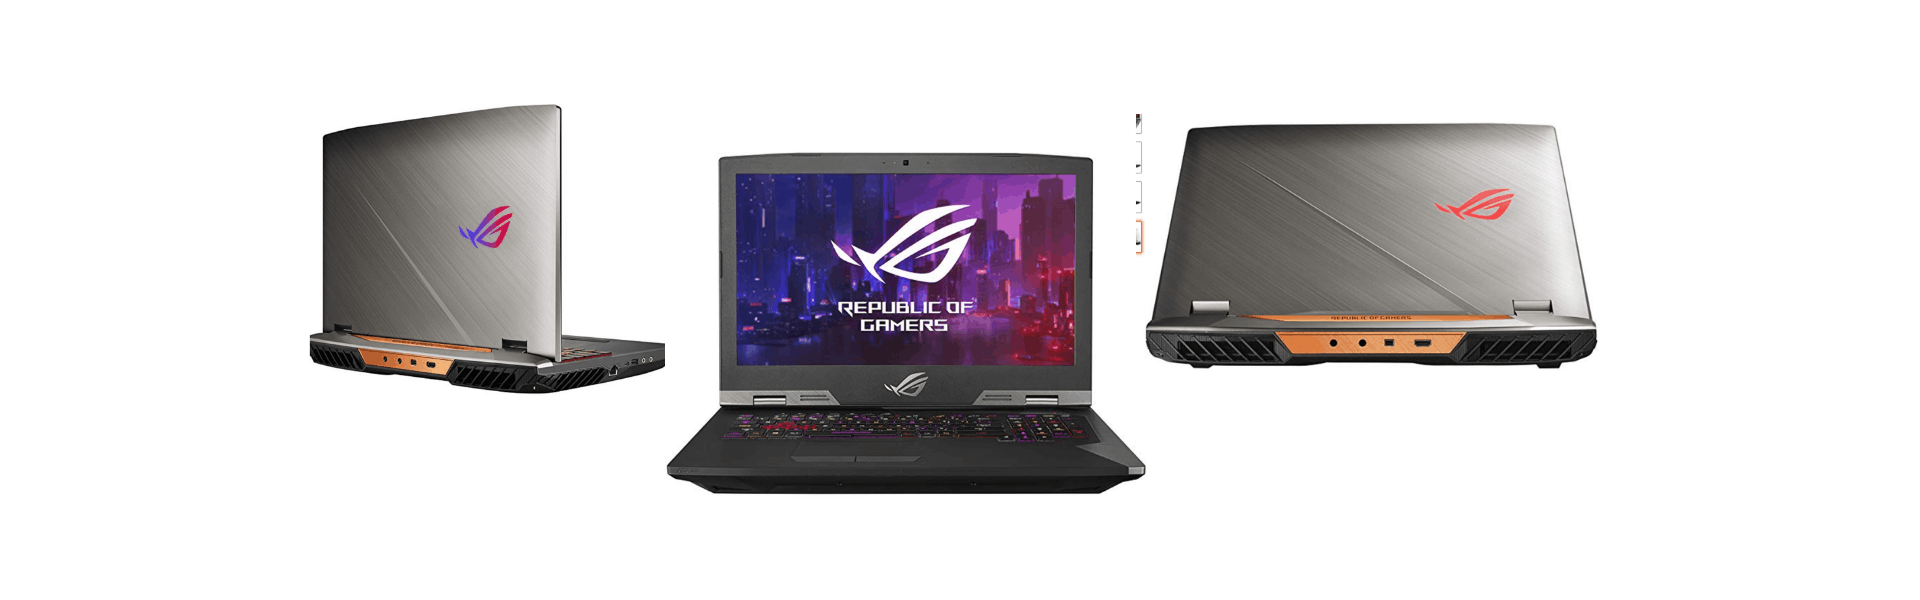 ASUS ROG G703GX Gaming Laptop Review